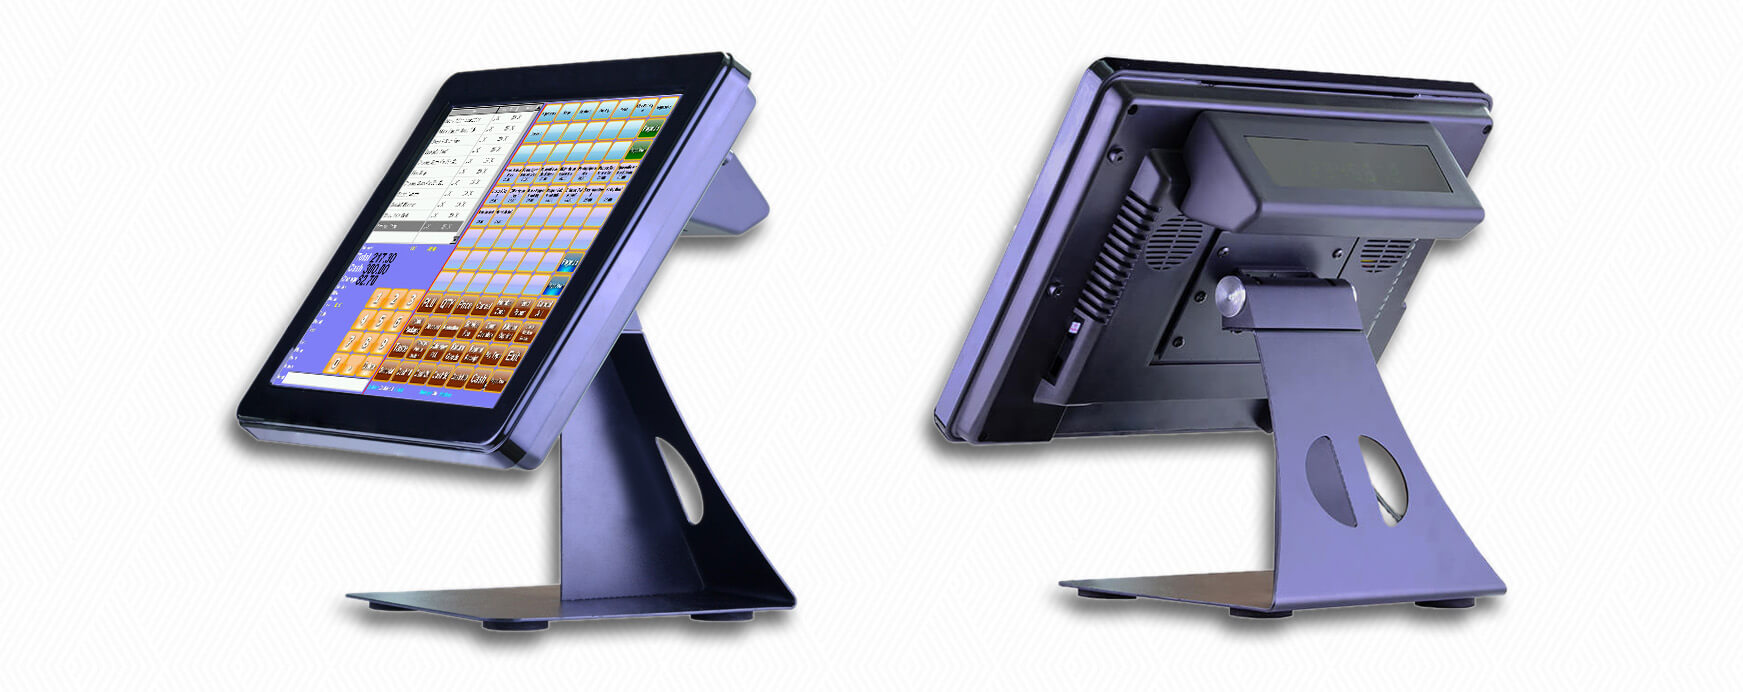 NOBLY Technology-Manufacturer Of New Cash Register Nobly With 15 Inch Touch Screen